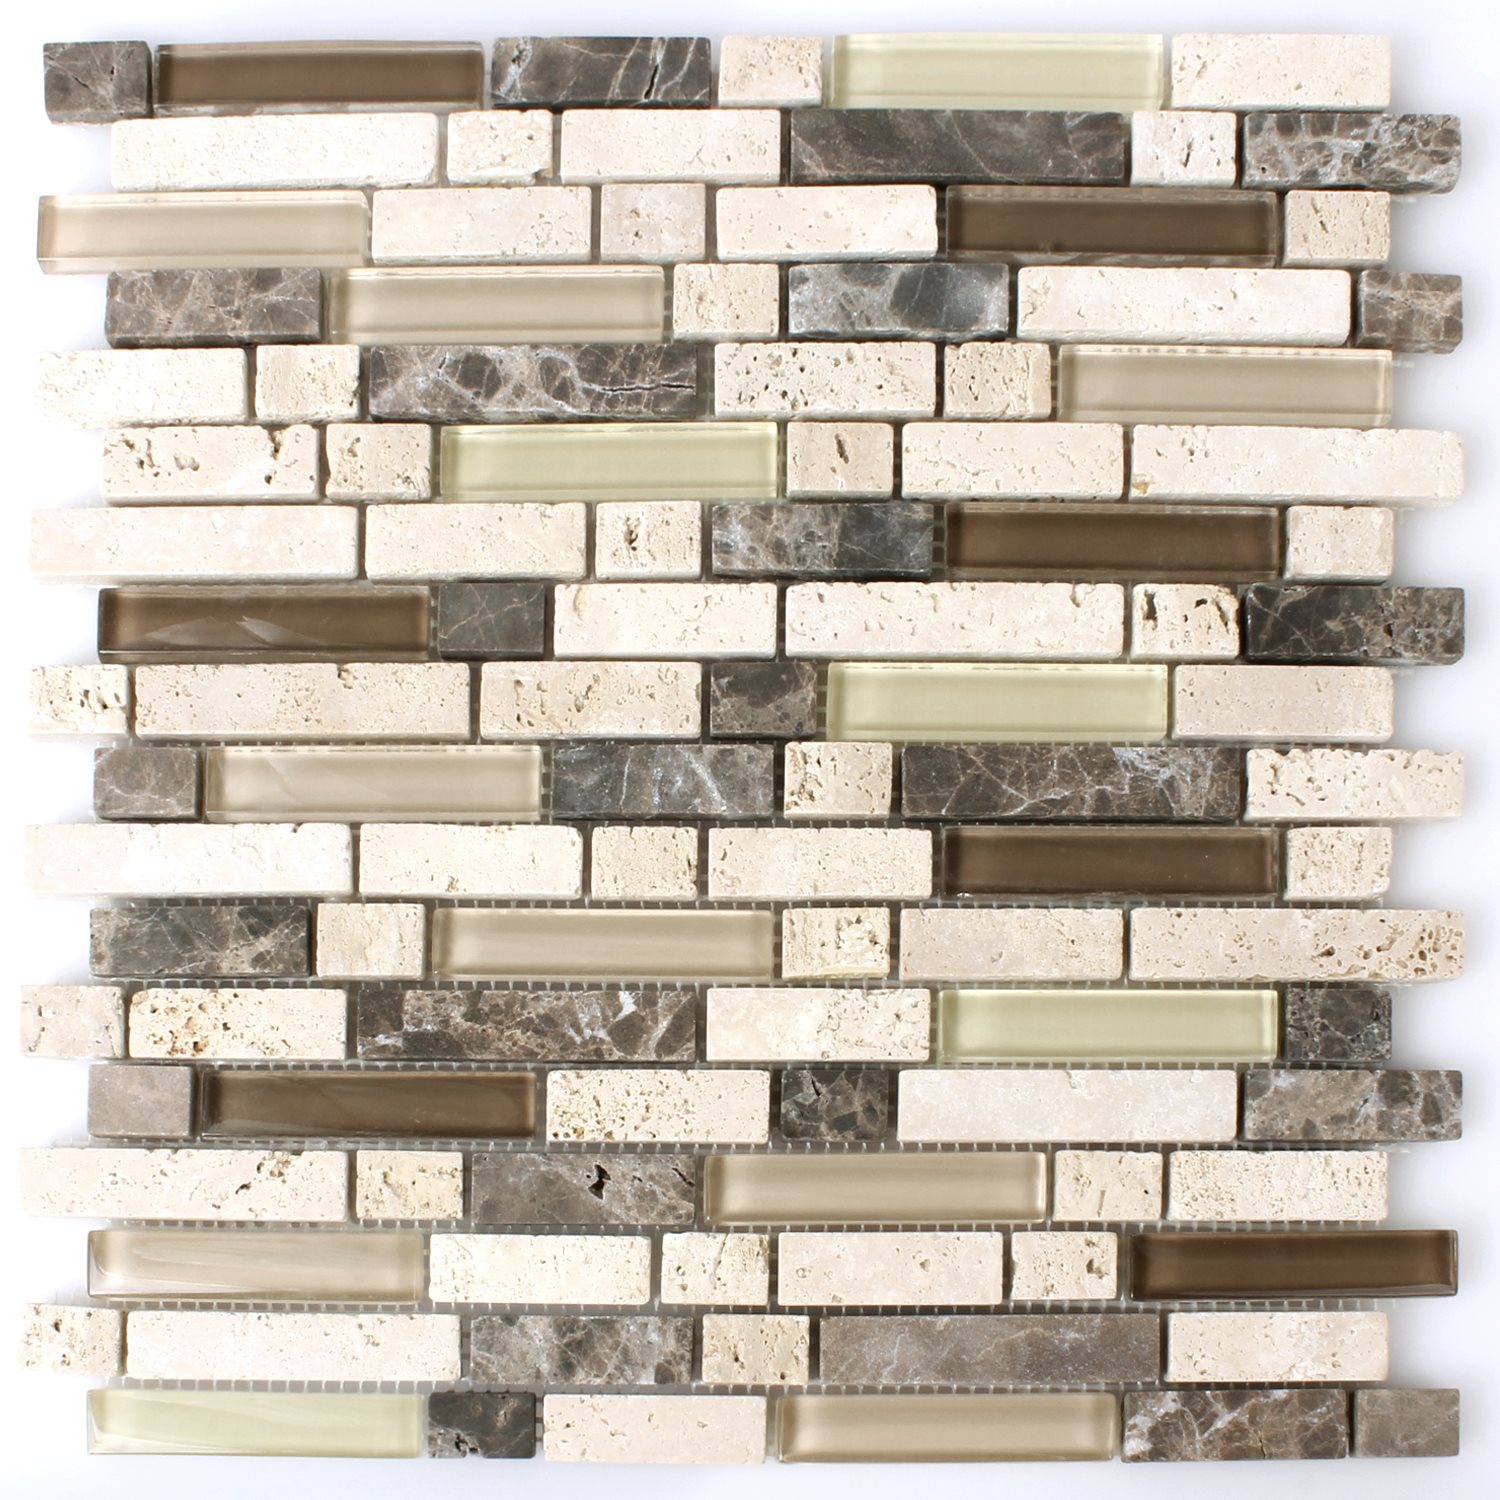 glass natural stone mosaic tiles beige brown mix mt51281. Black Bedroom Furniture Sets. Home Design Ideas